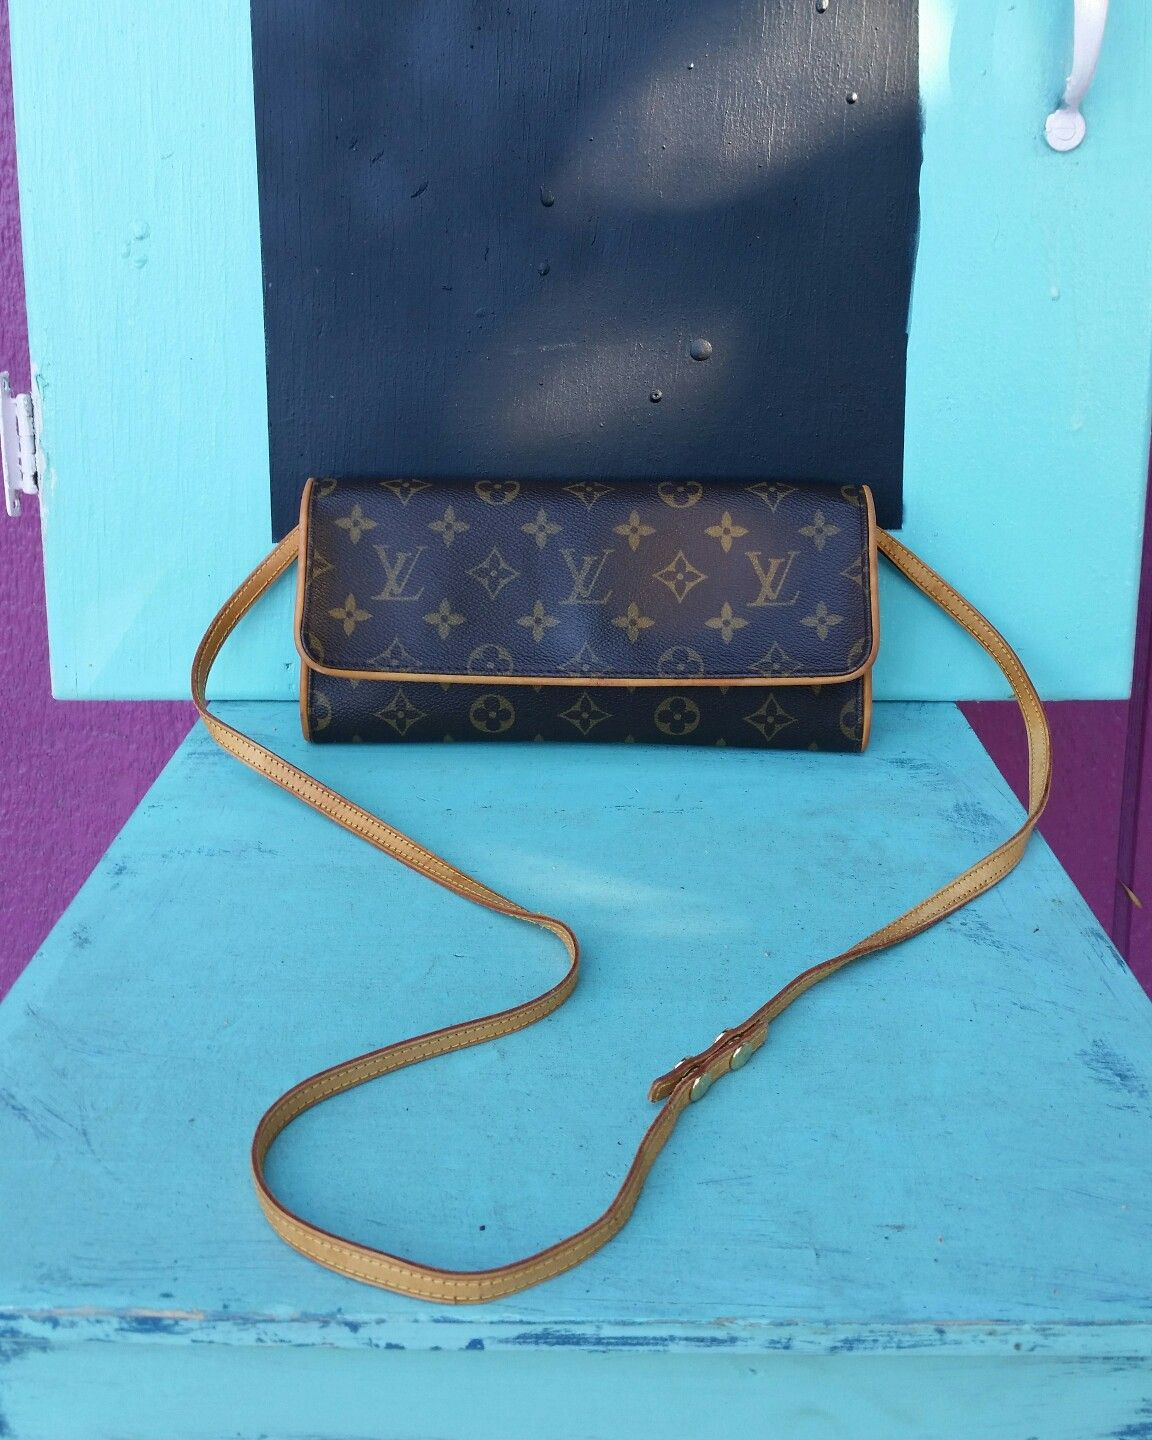 e63345c0ba0a Preloved authentic Louis Vuitton Pochette clutch crossbody bag limited  edition issued for LV SA only.